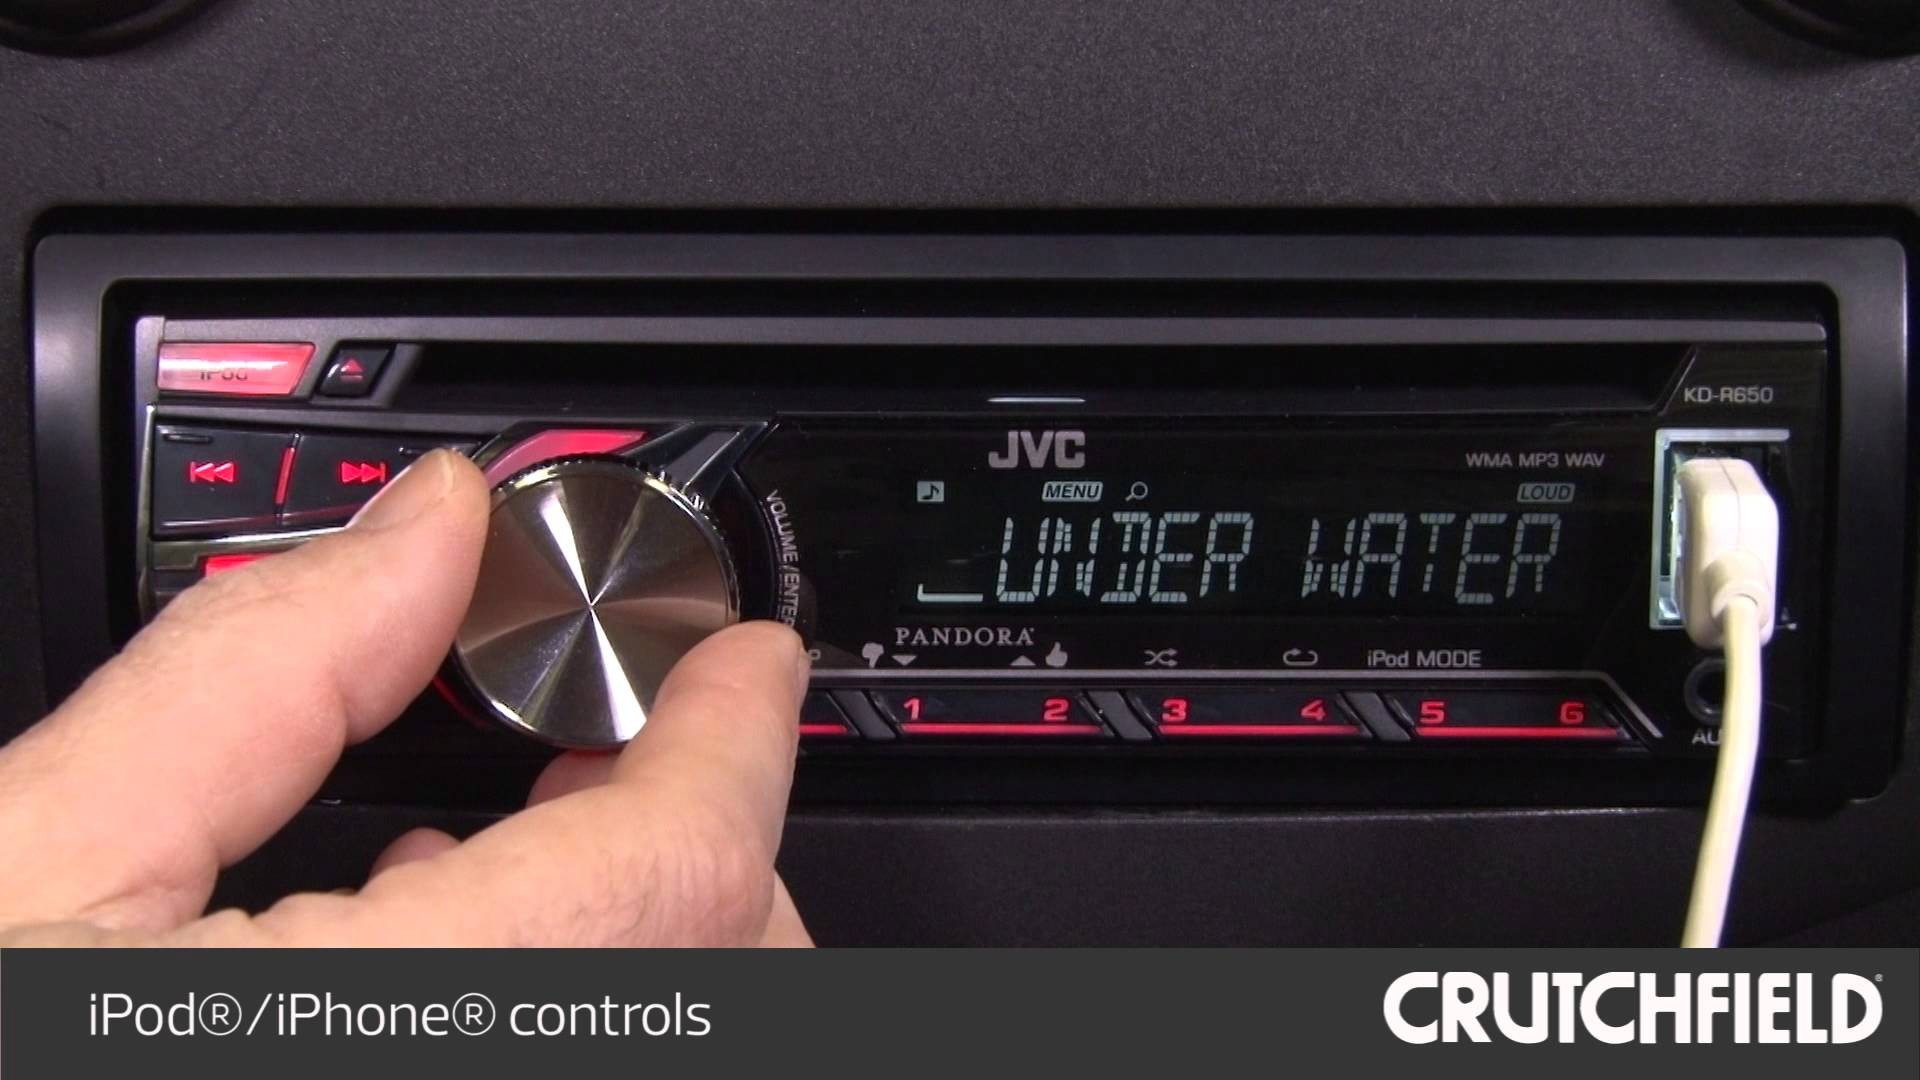 JVC KD R650 Display and Controls Demo